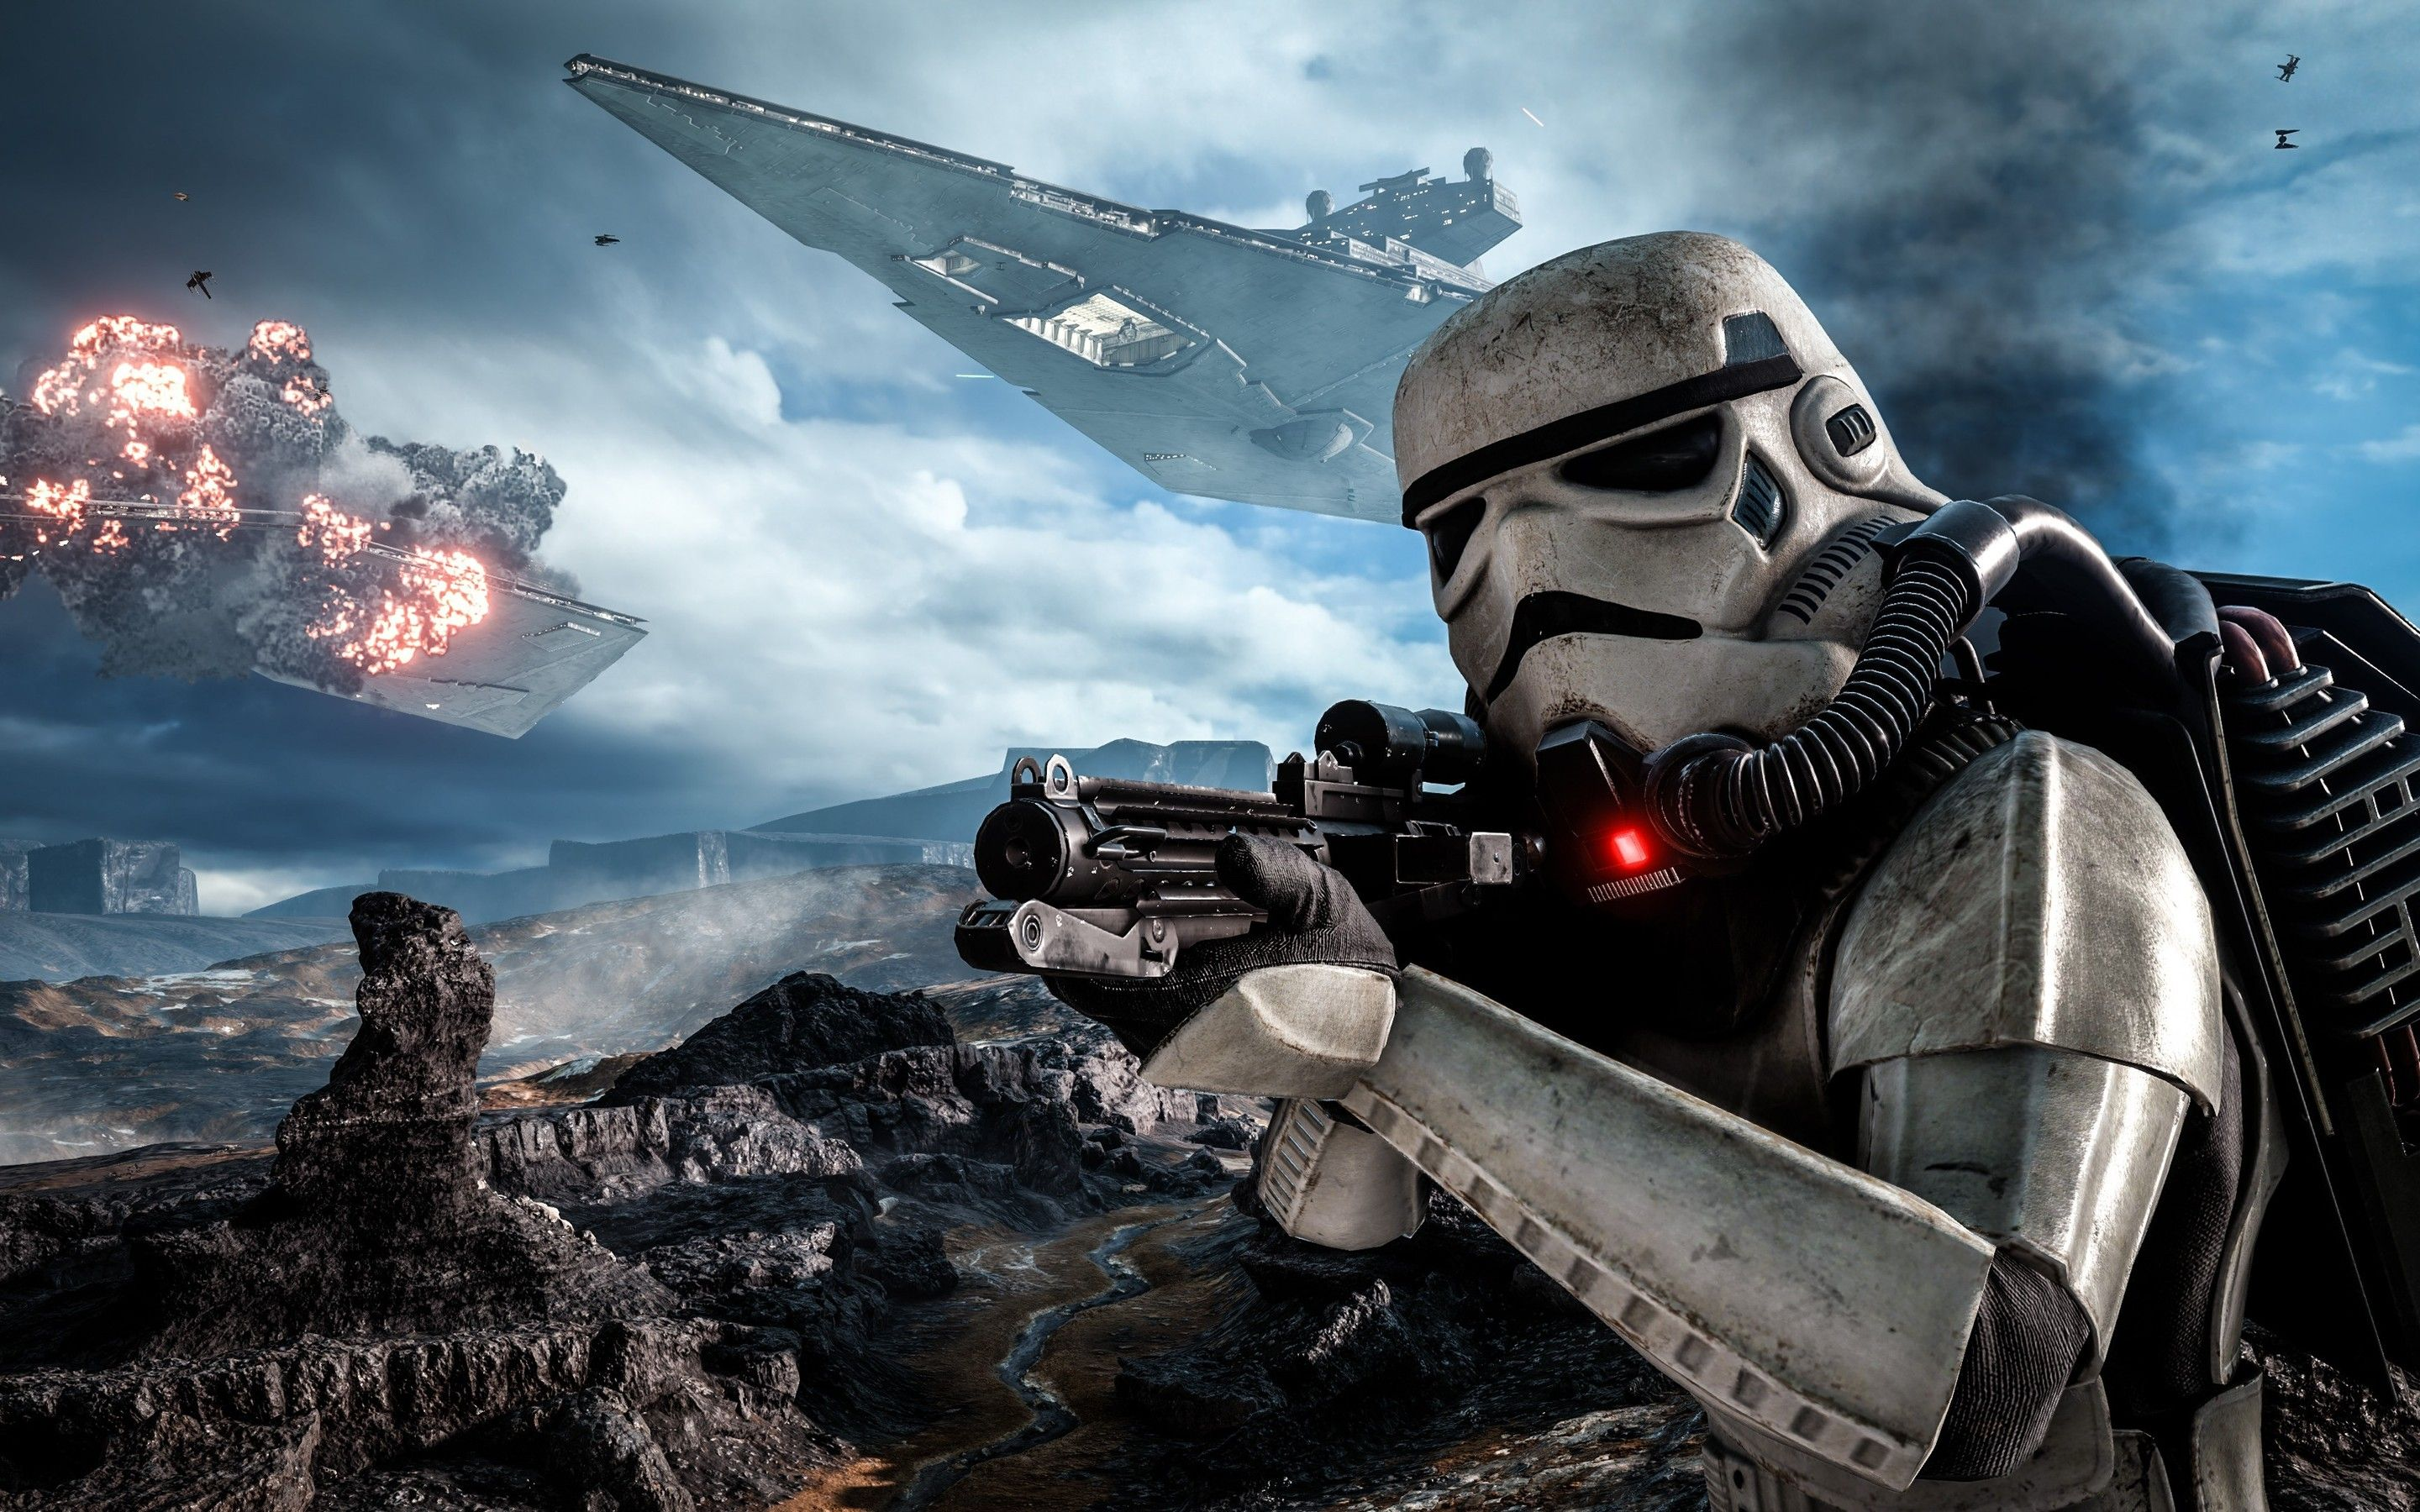 Star Wars Battlefront Wallpapers Top Free Star Wars